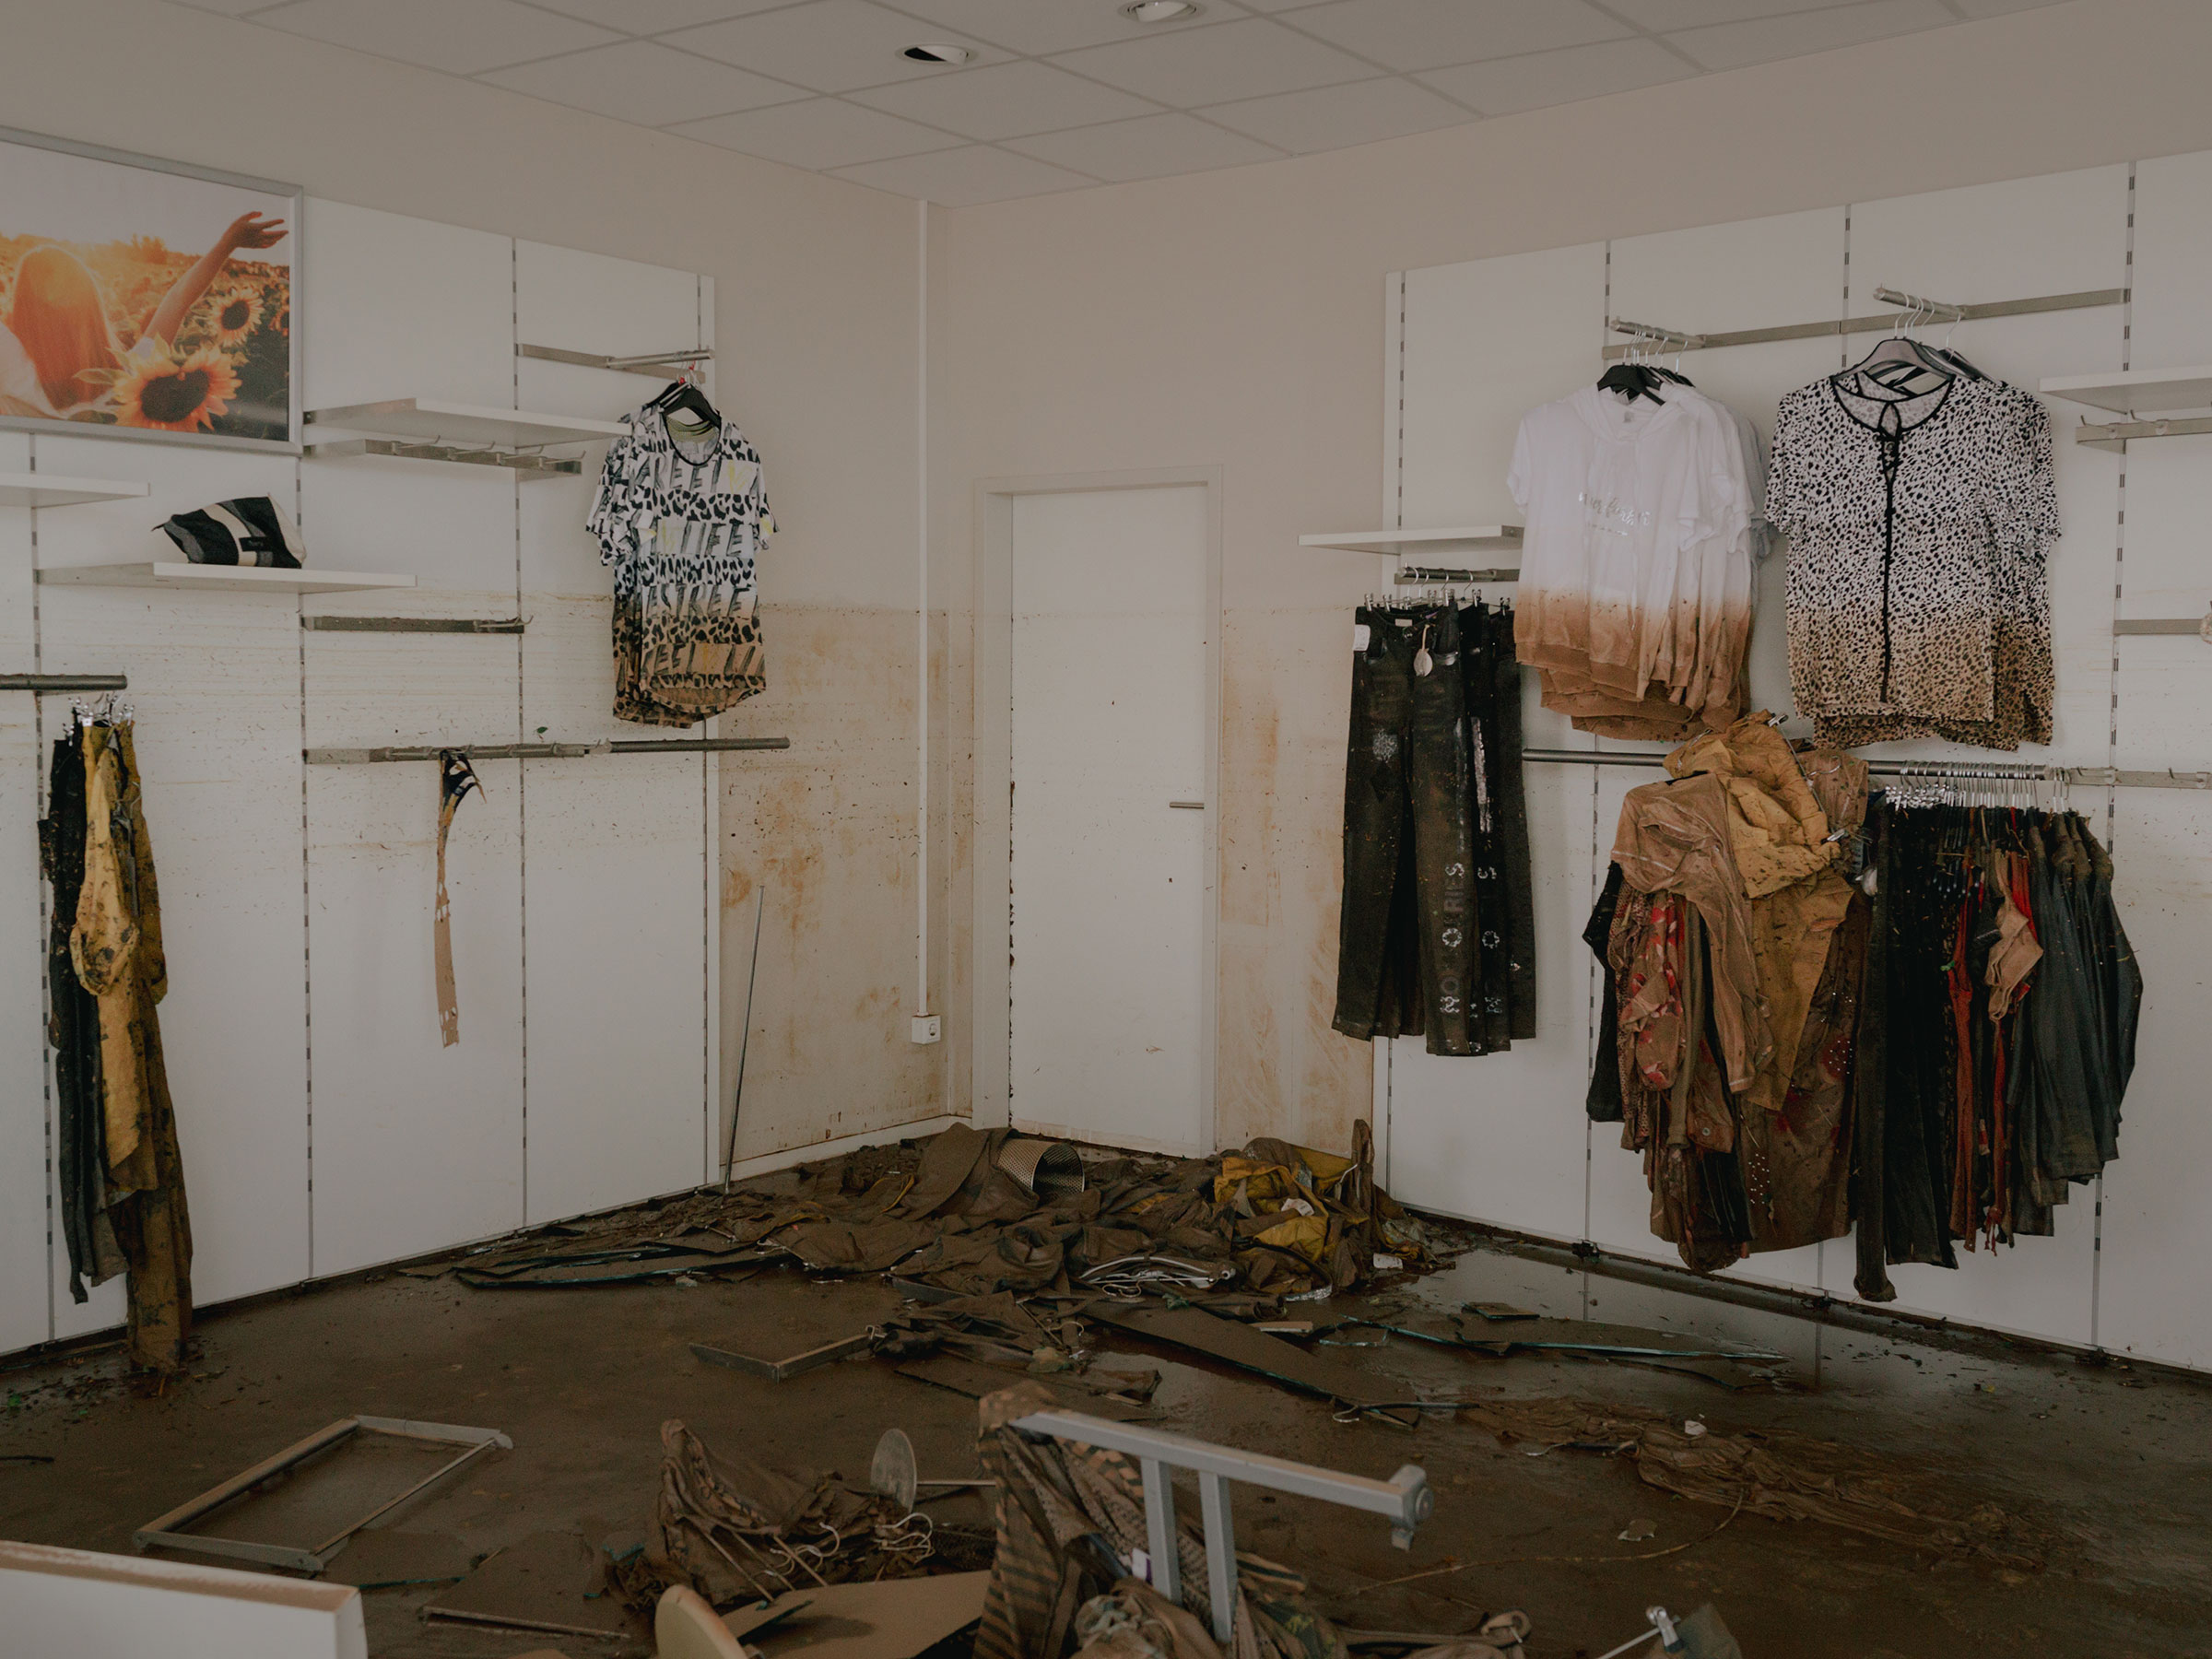 A damaged clothing store in the aftermath of the floods in the city center of Euskirchen, Germany, on July 16.